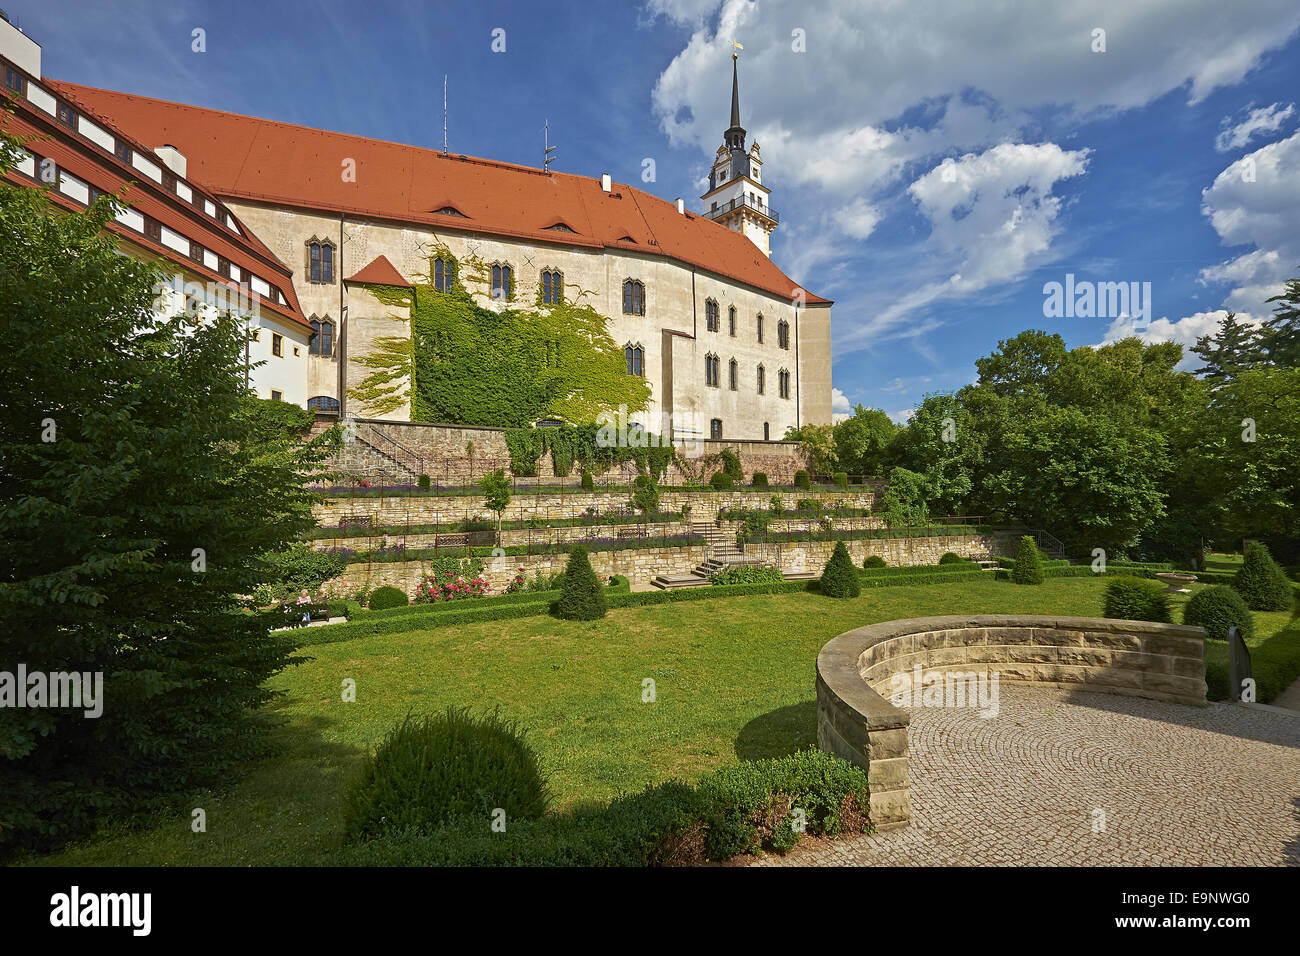 Castle Hartenfels, Torgau, Germany Stock Photo